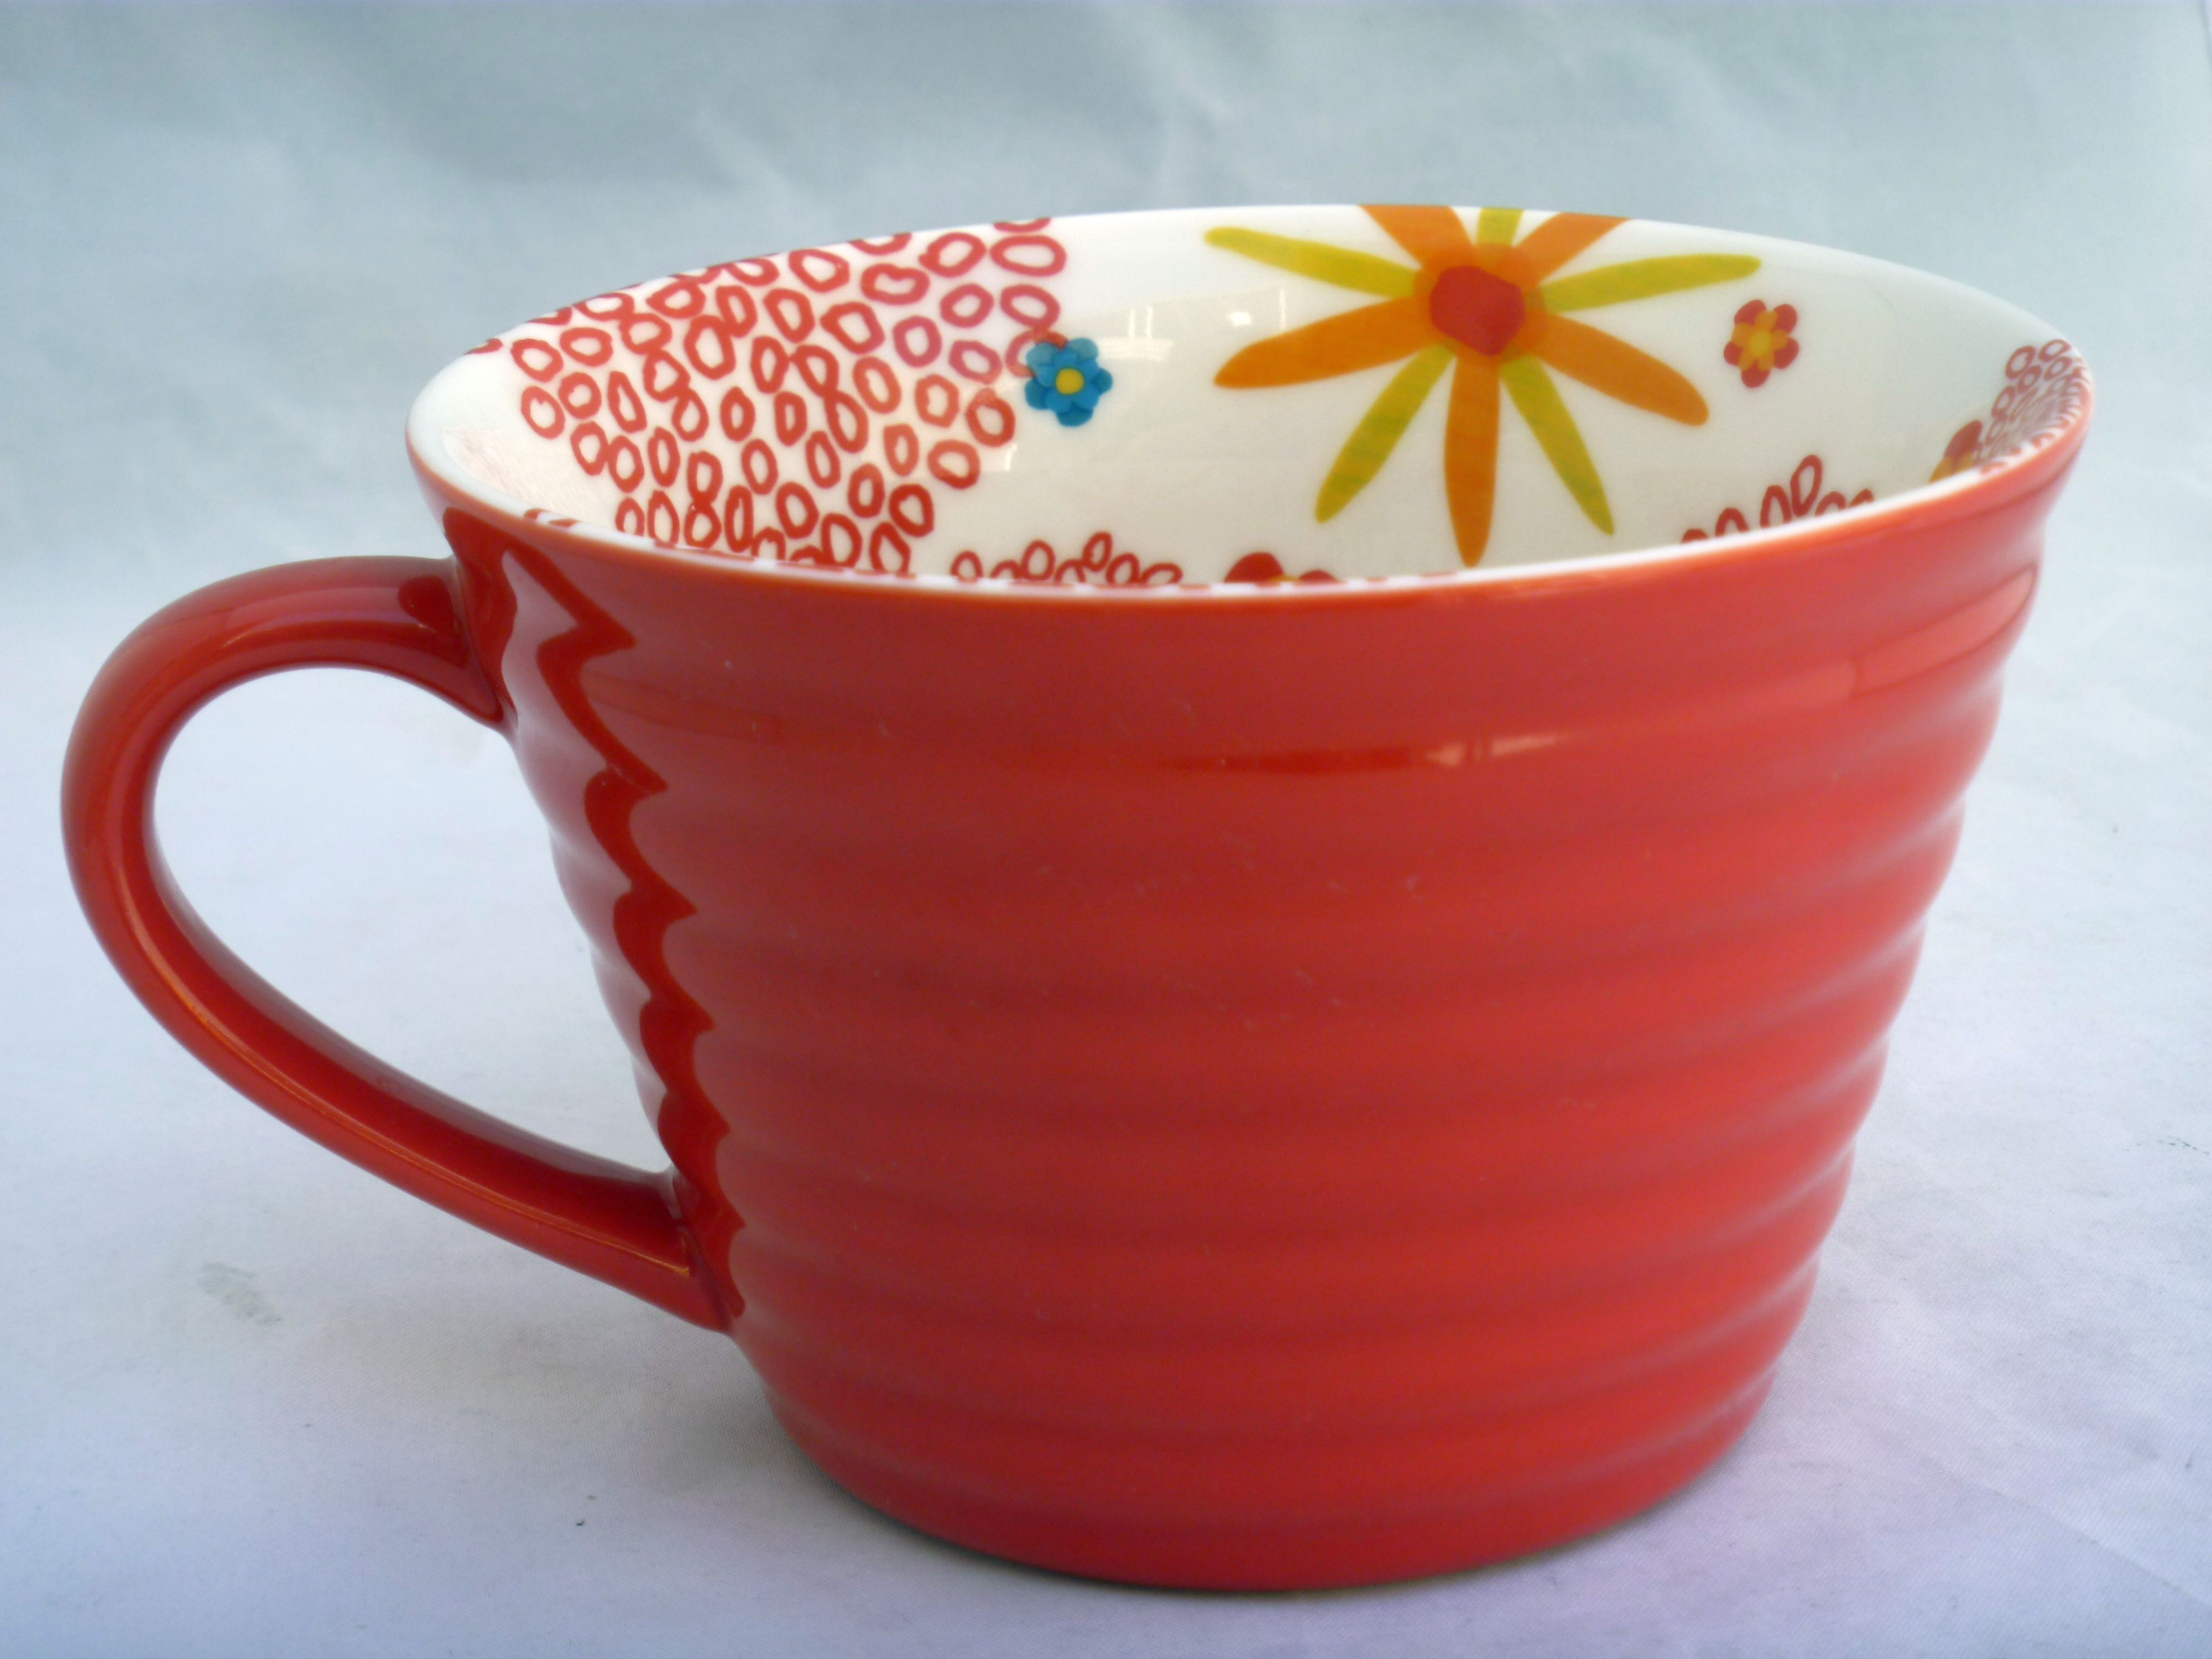 Starbucks 2007 Cappuccino Cup Ribbed Red With White Red Floral Interior 12 Oz Floral Interior Cappuccino Cups Red Floral